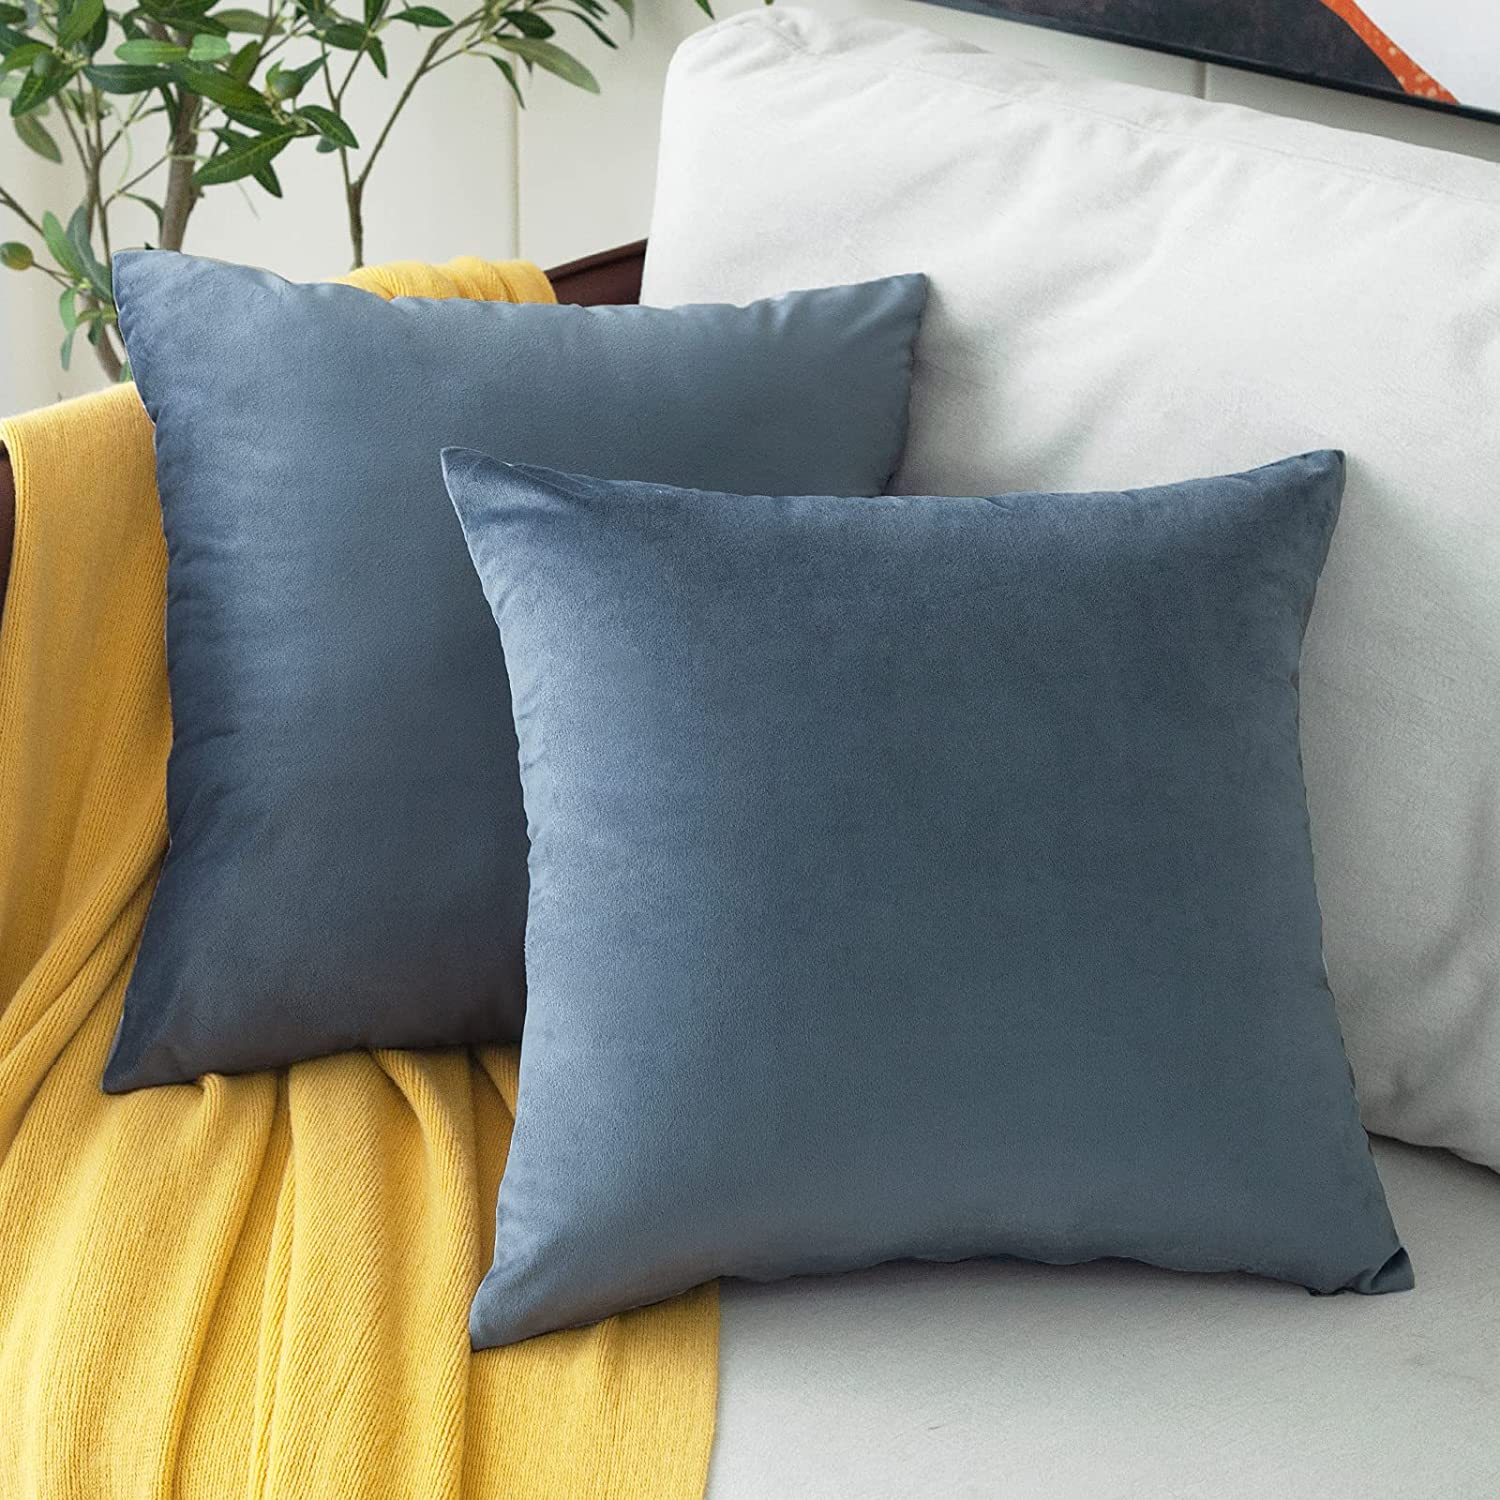 MUDILY Pack of 2 Velvet Supersoft Ranking TOP20 Throw Decorative Pillow Square Outlet SALE